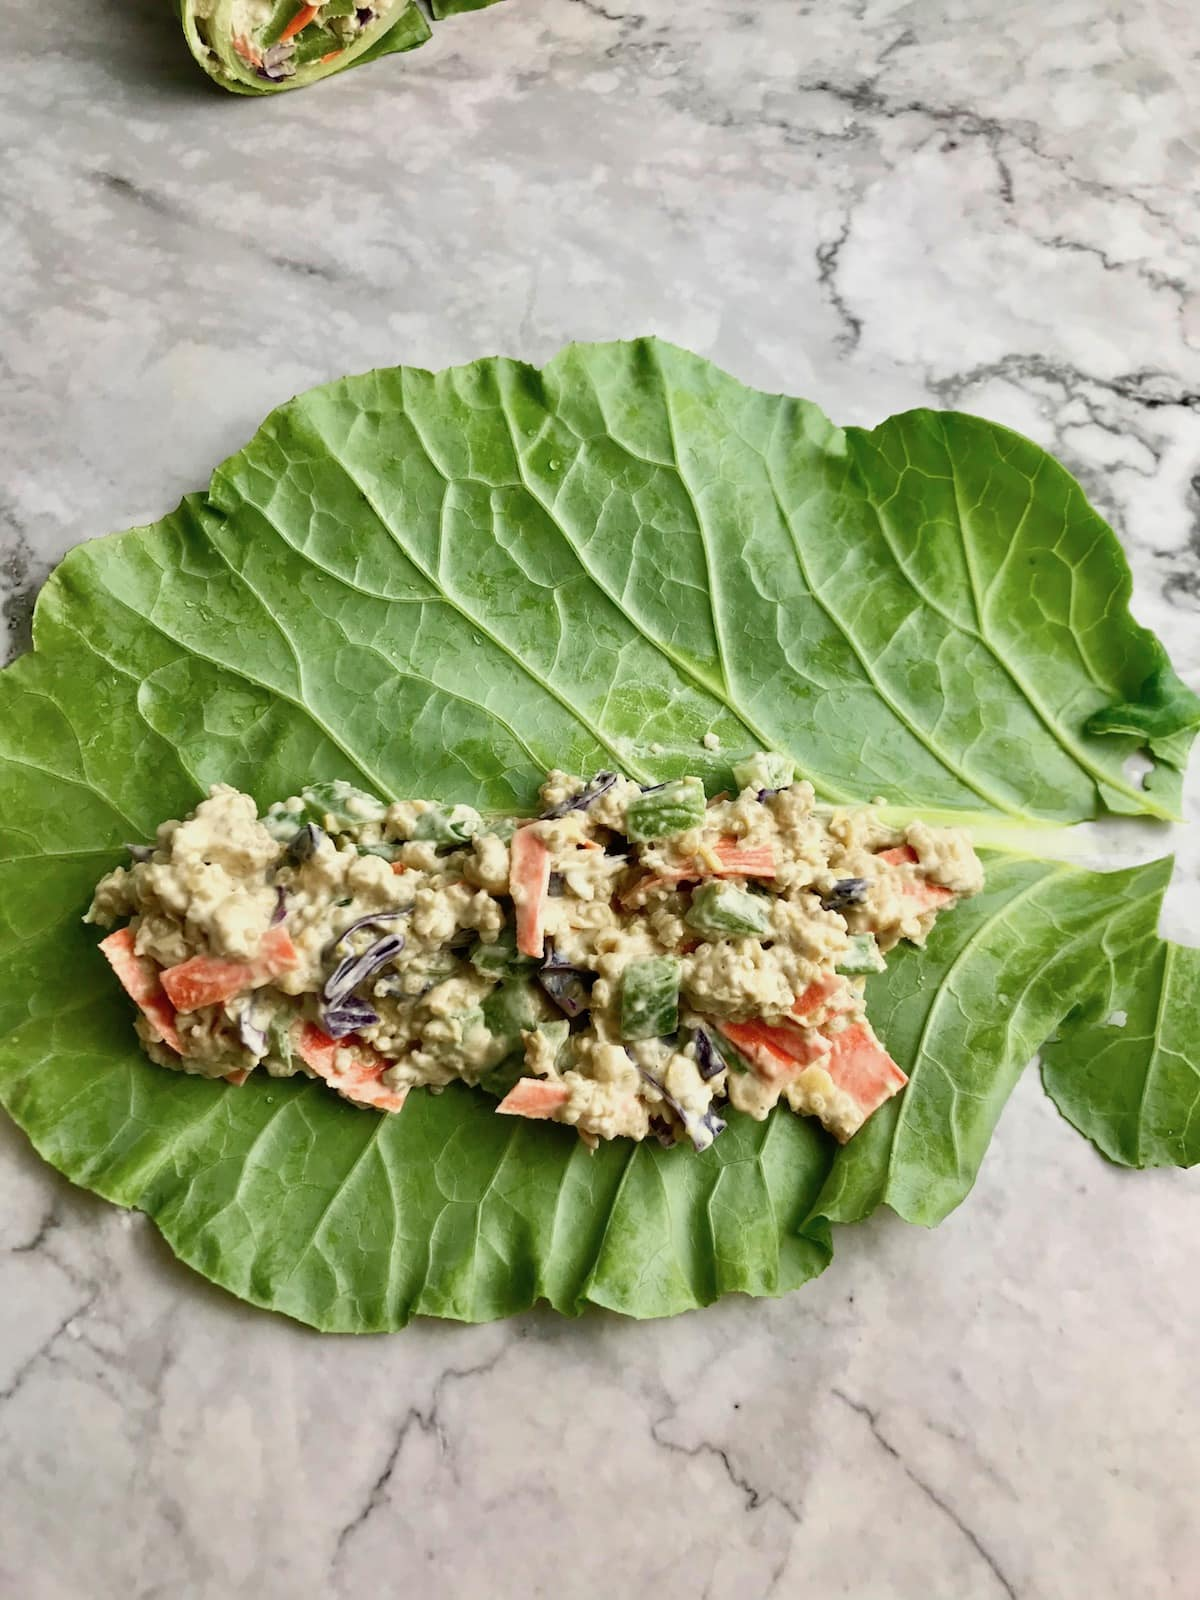 A collard green leaf with chickpea quinoa filling on it lengthwise.